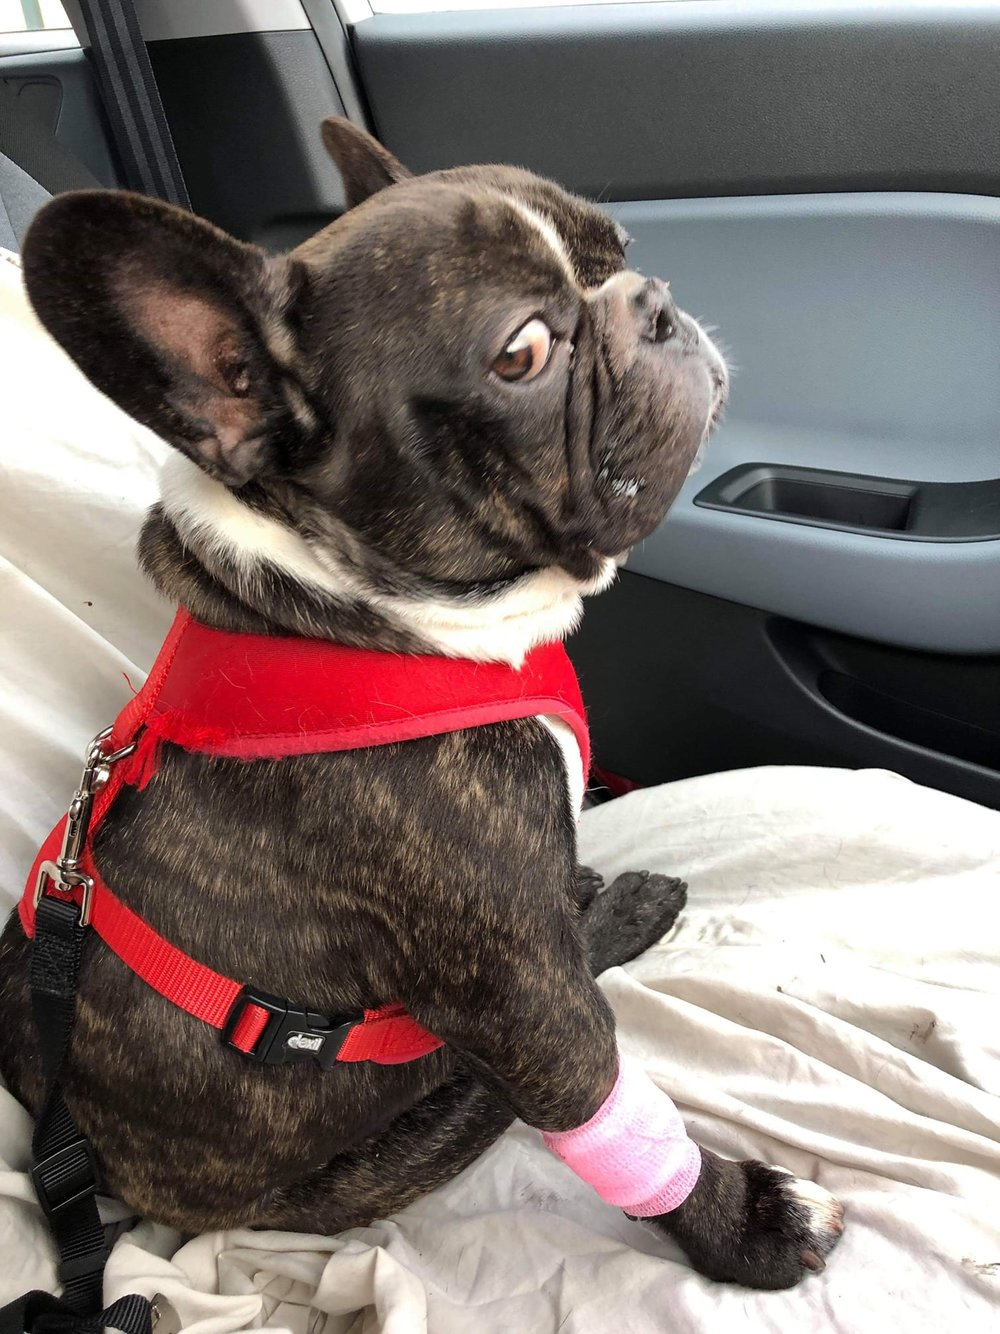 🐶Adoption Post🐶 - Age - 3 years 2 monthsAdoption Fee - £350Hello everyone, I'm Elfie and I'm looking for my happy ever after. I have been with FBS for some time now and have recently had life changing surgery (BOAS)I like food, sofas, beds and anything I'm not supposed to jump up on.I love everyone and will always seek attention. My favorite is to snooze on the sofa, chew a tennis ball or two! and of course road trips!Because I love my food soo much, I really don't like to share so for this reason the ladies at FBS think I shouldn't be little ones, older kids best.I'm not too sure about sharing my home with other dogs sofa now I'd like snuggles all for myself. Cats…well I don't I would like them either.If you think you are the perfect home for Elfie then please send an email to fbsapplications@gmail.comStating why we should choose you over anyone elsePlease also make sure that you have downloaded and submitted an application form into us.Please note that if you are contacted and short listed a home check is to be completed within a few days of initial contact and the successful candidate will need to be available for collecting the dog within 3/4 days of being toldIf you are unsuccessful we will email you to inform you so please don't worryGood luck everyonePlease also bear in mind that you will have to travel to Leeds to collect this boy.